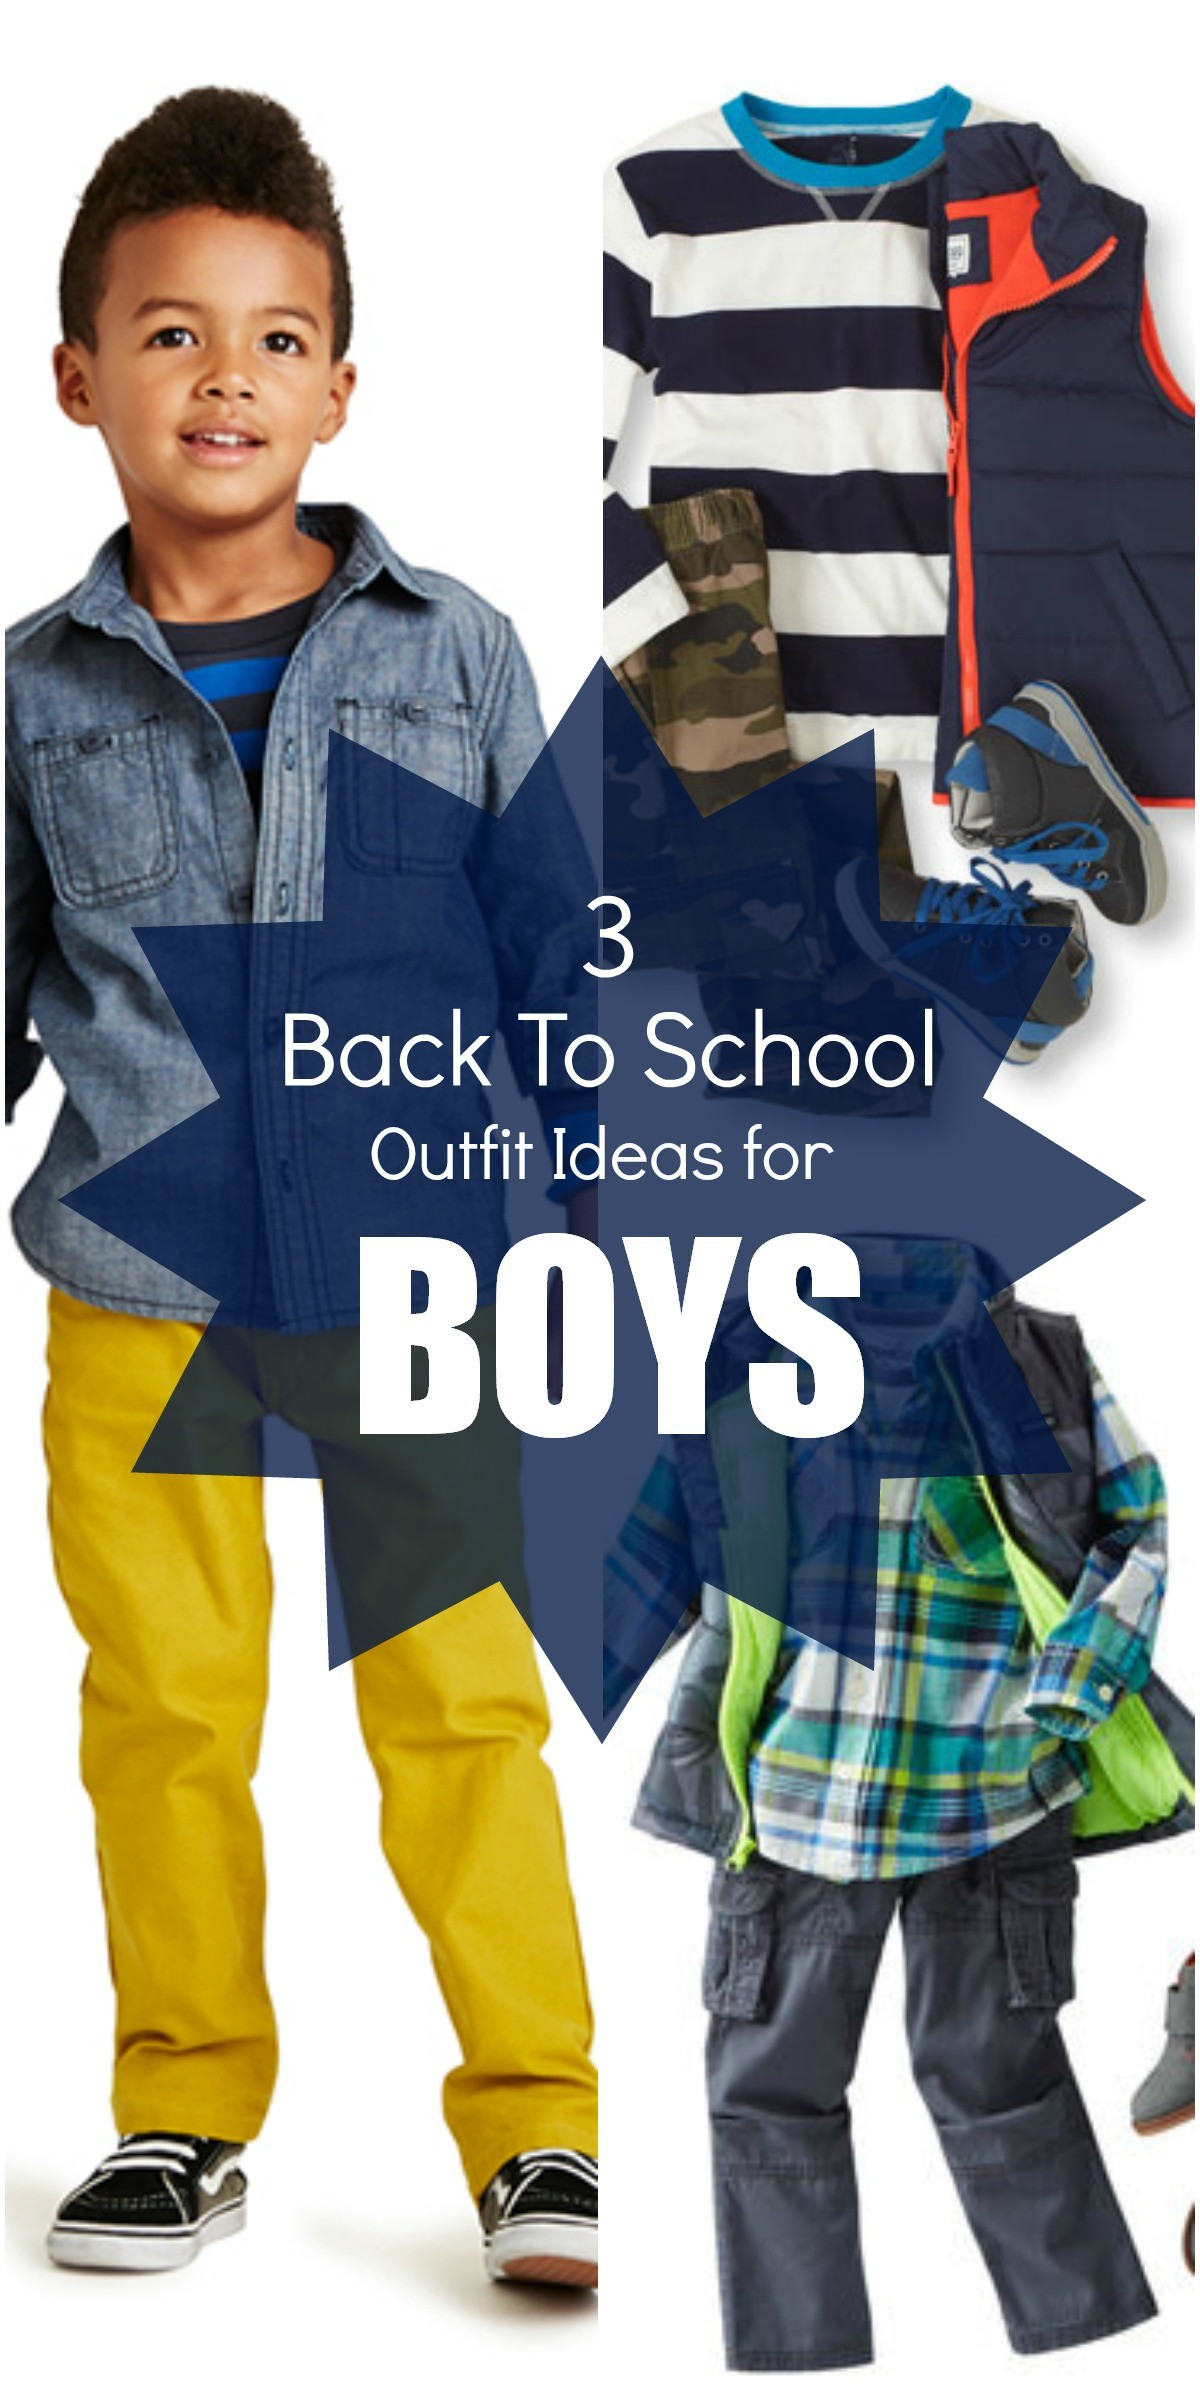 family photo clothing ideas fall 2014 - Back to School Must Haves 3 Stylish Outfit Ideas for Boys